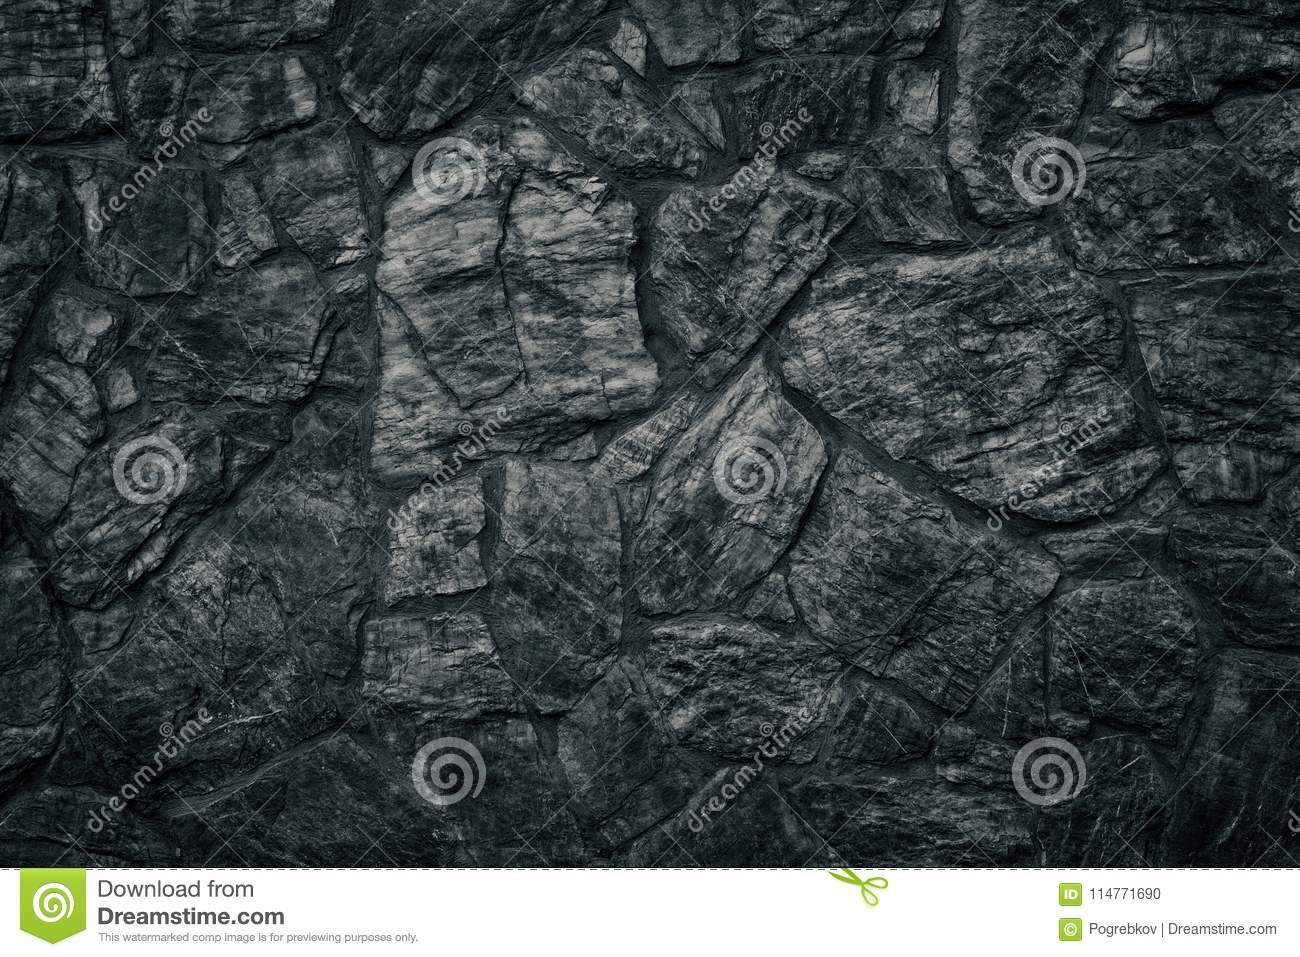 Download Black Stone Wall Texture As Sinister Gothic Background Stock Photo